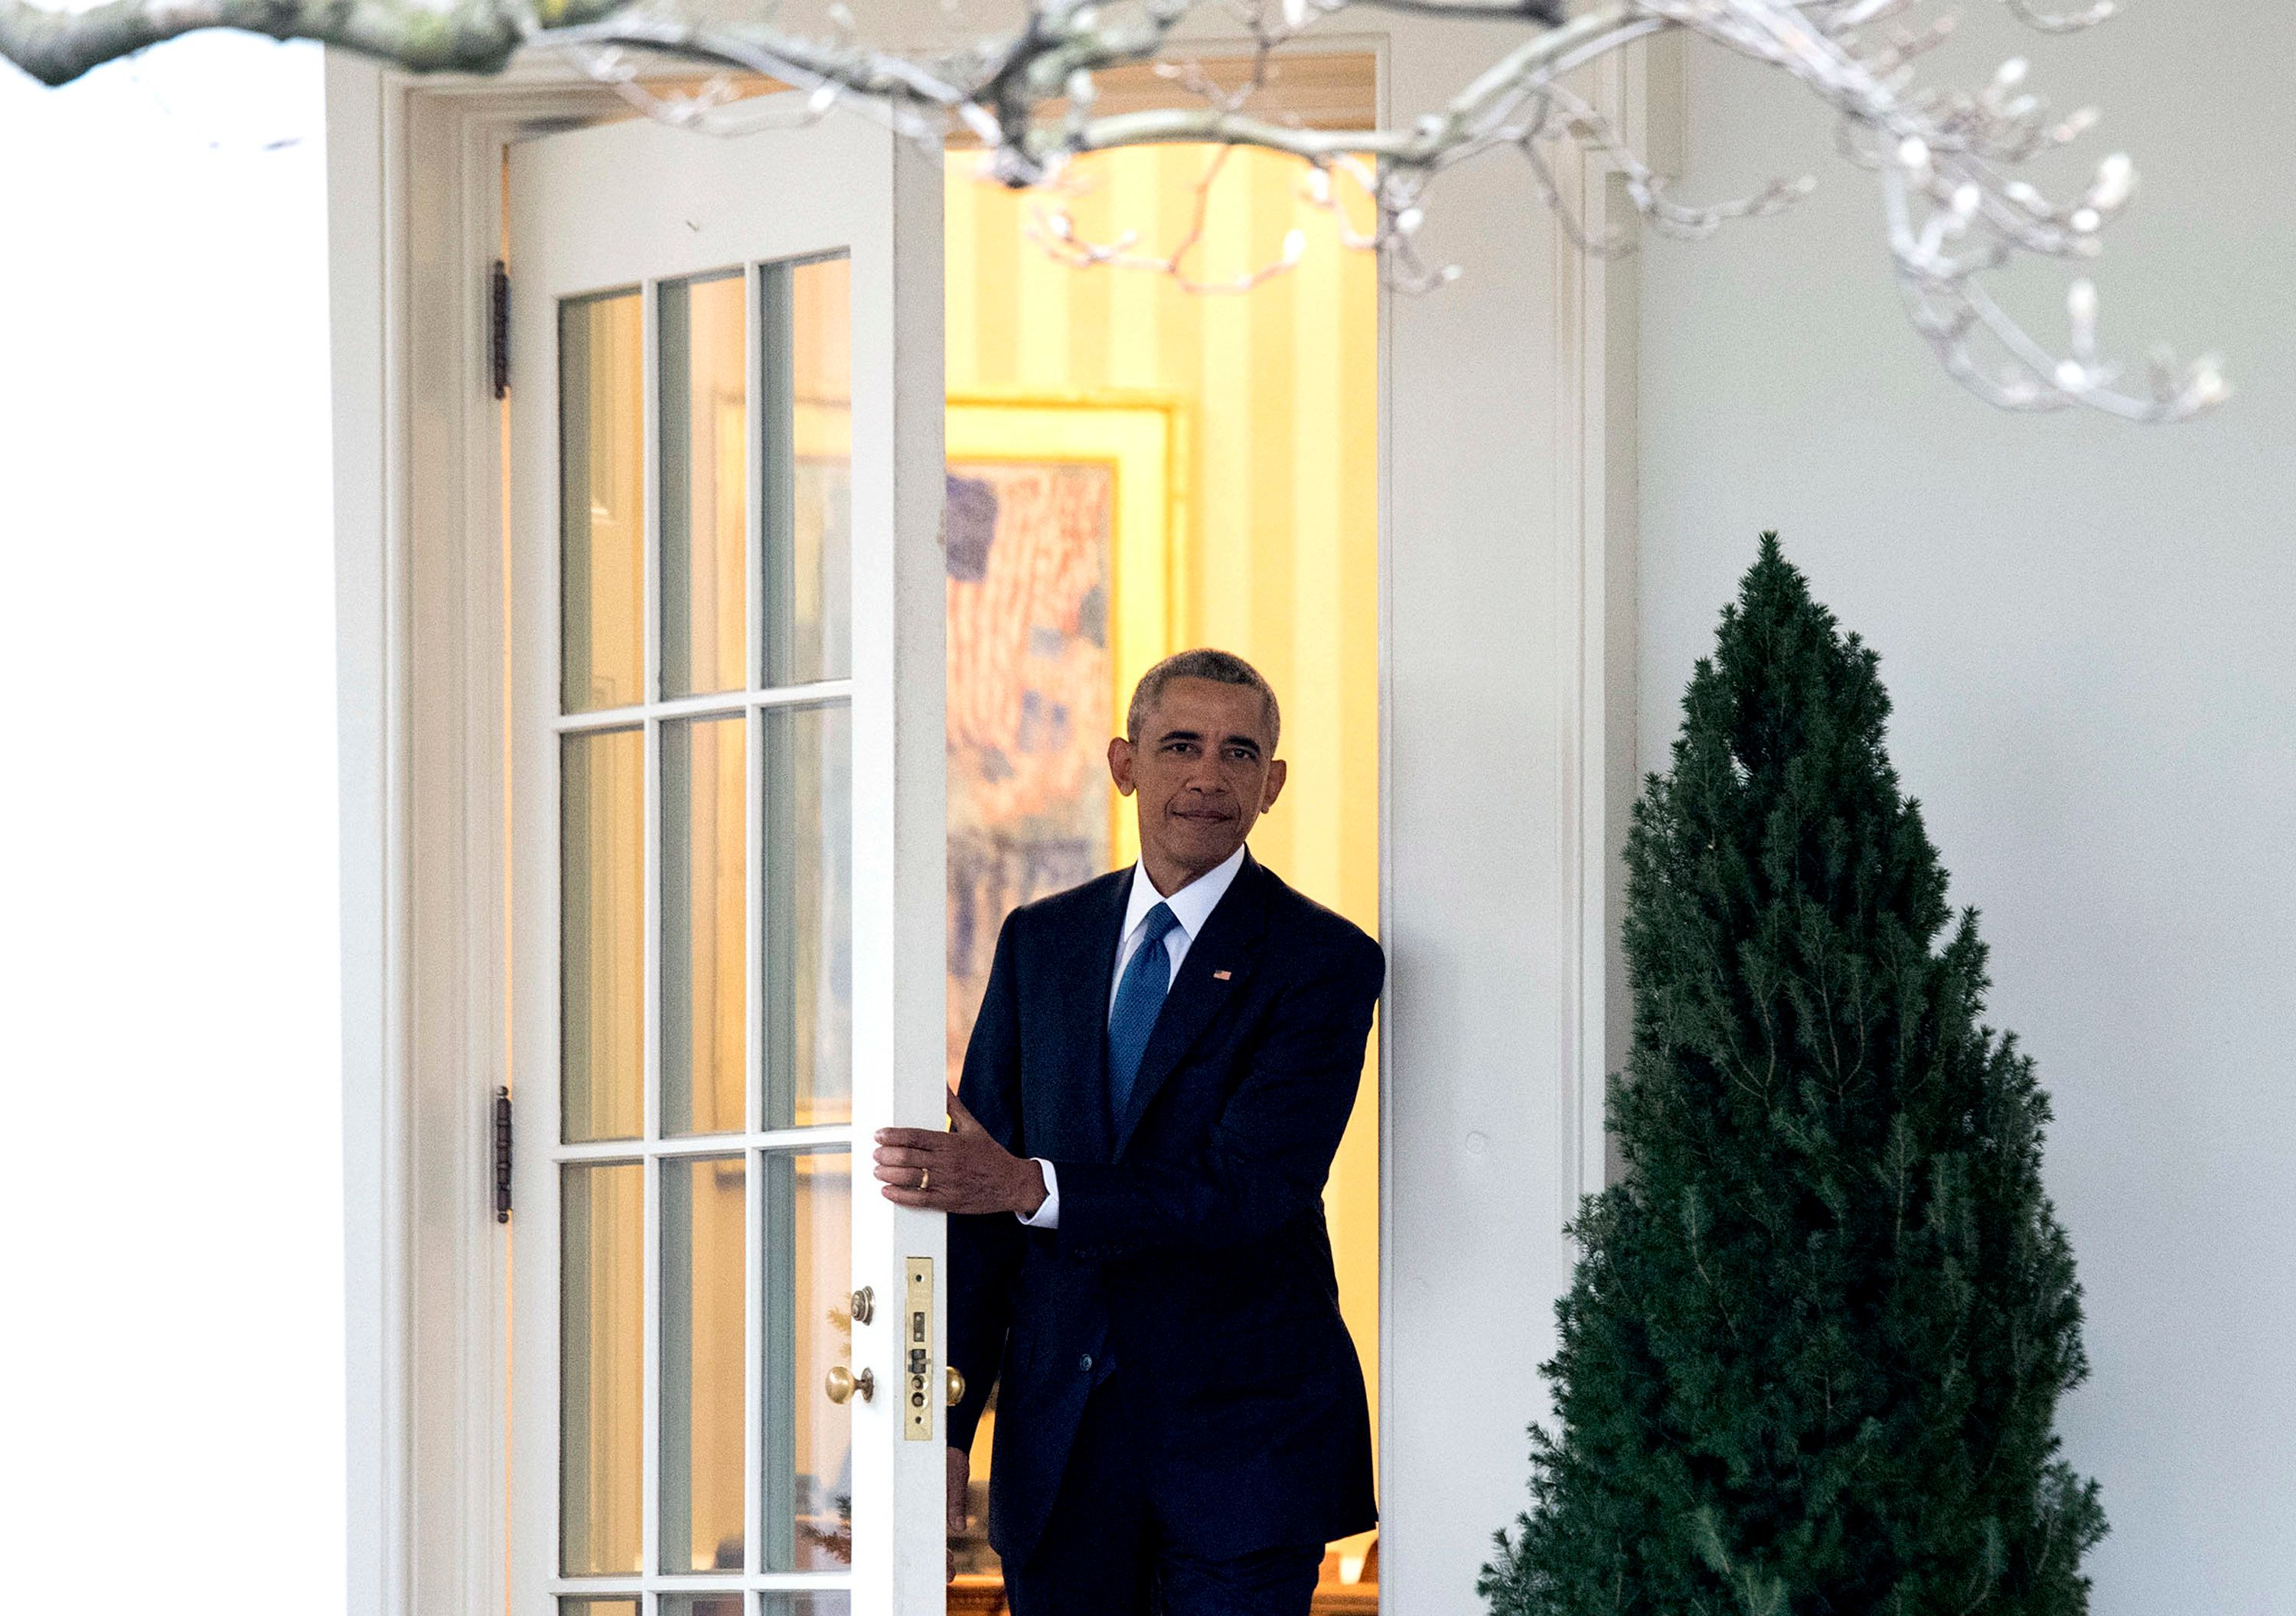 Barack Obama's Last Words To America As President: 'Thank